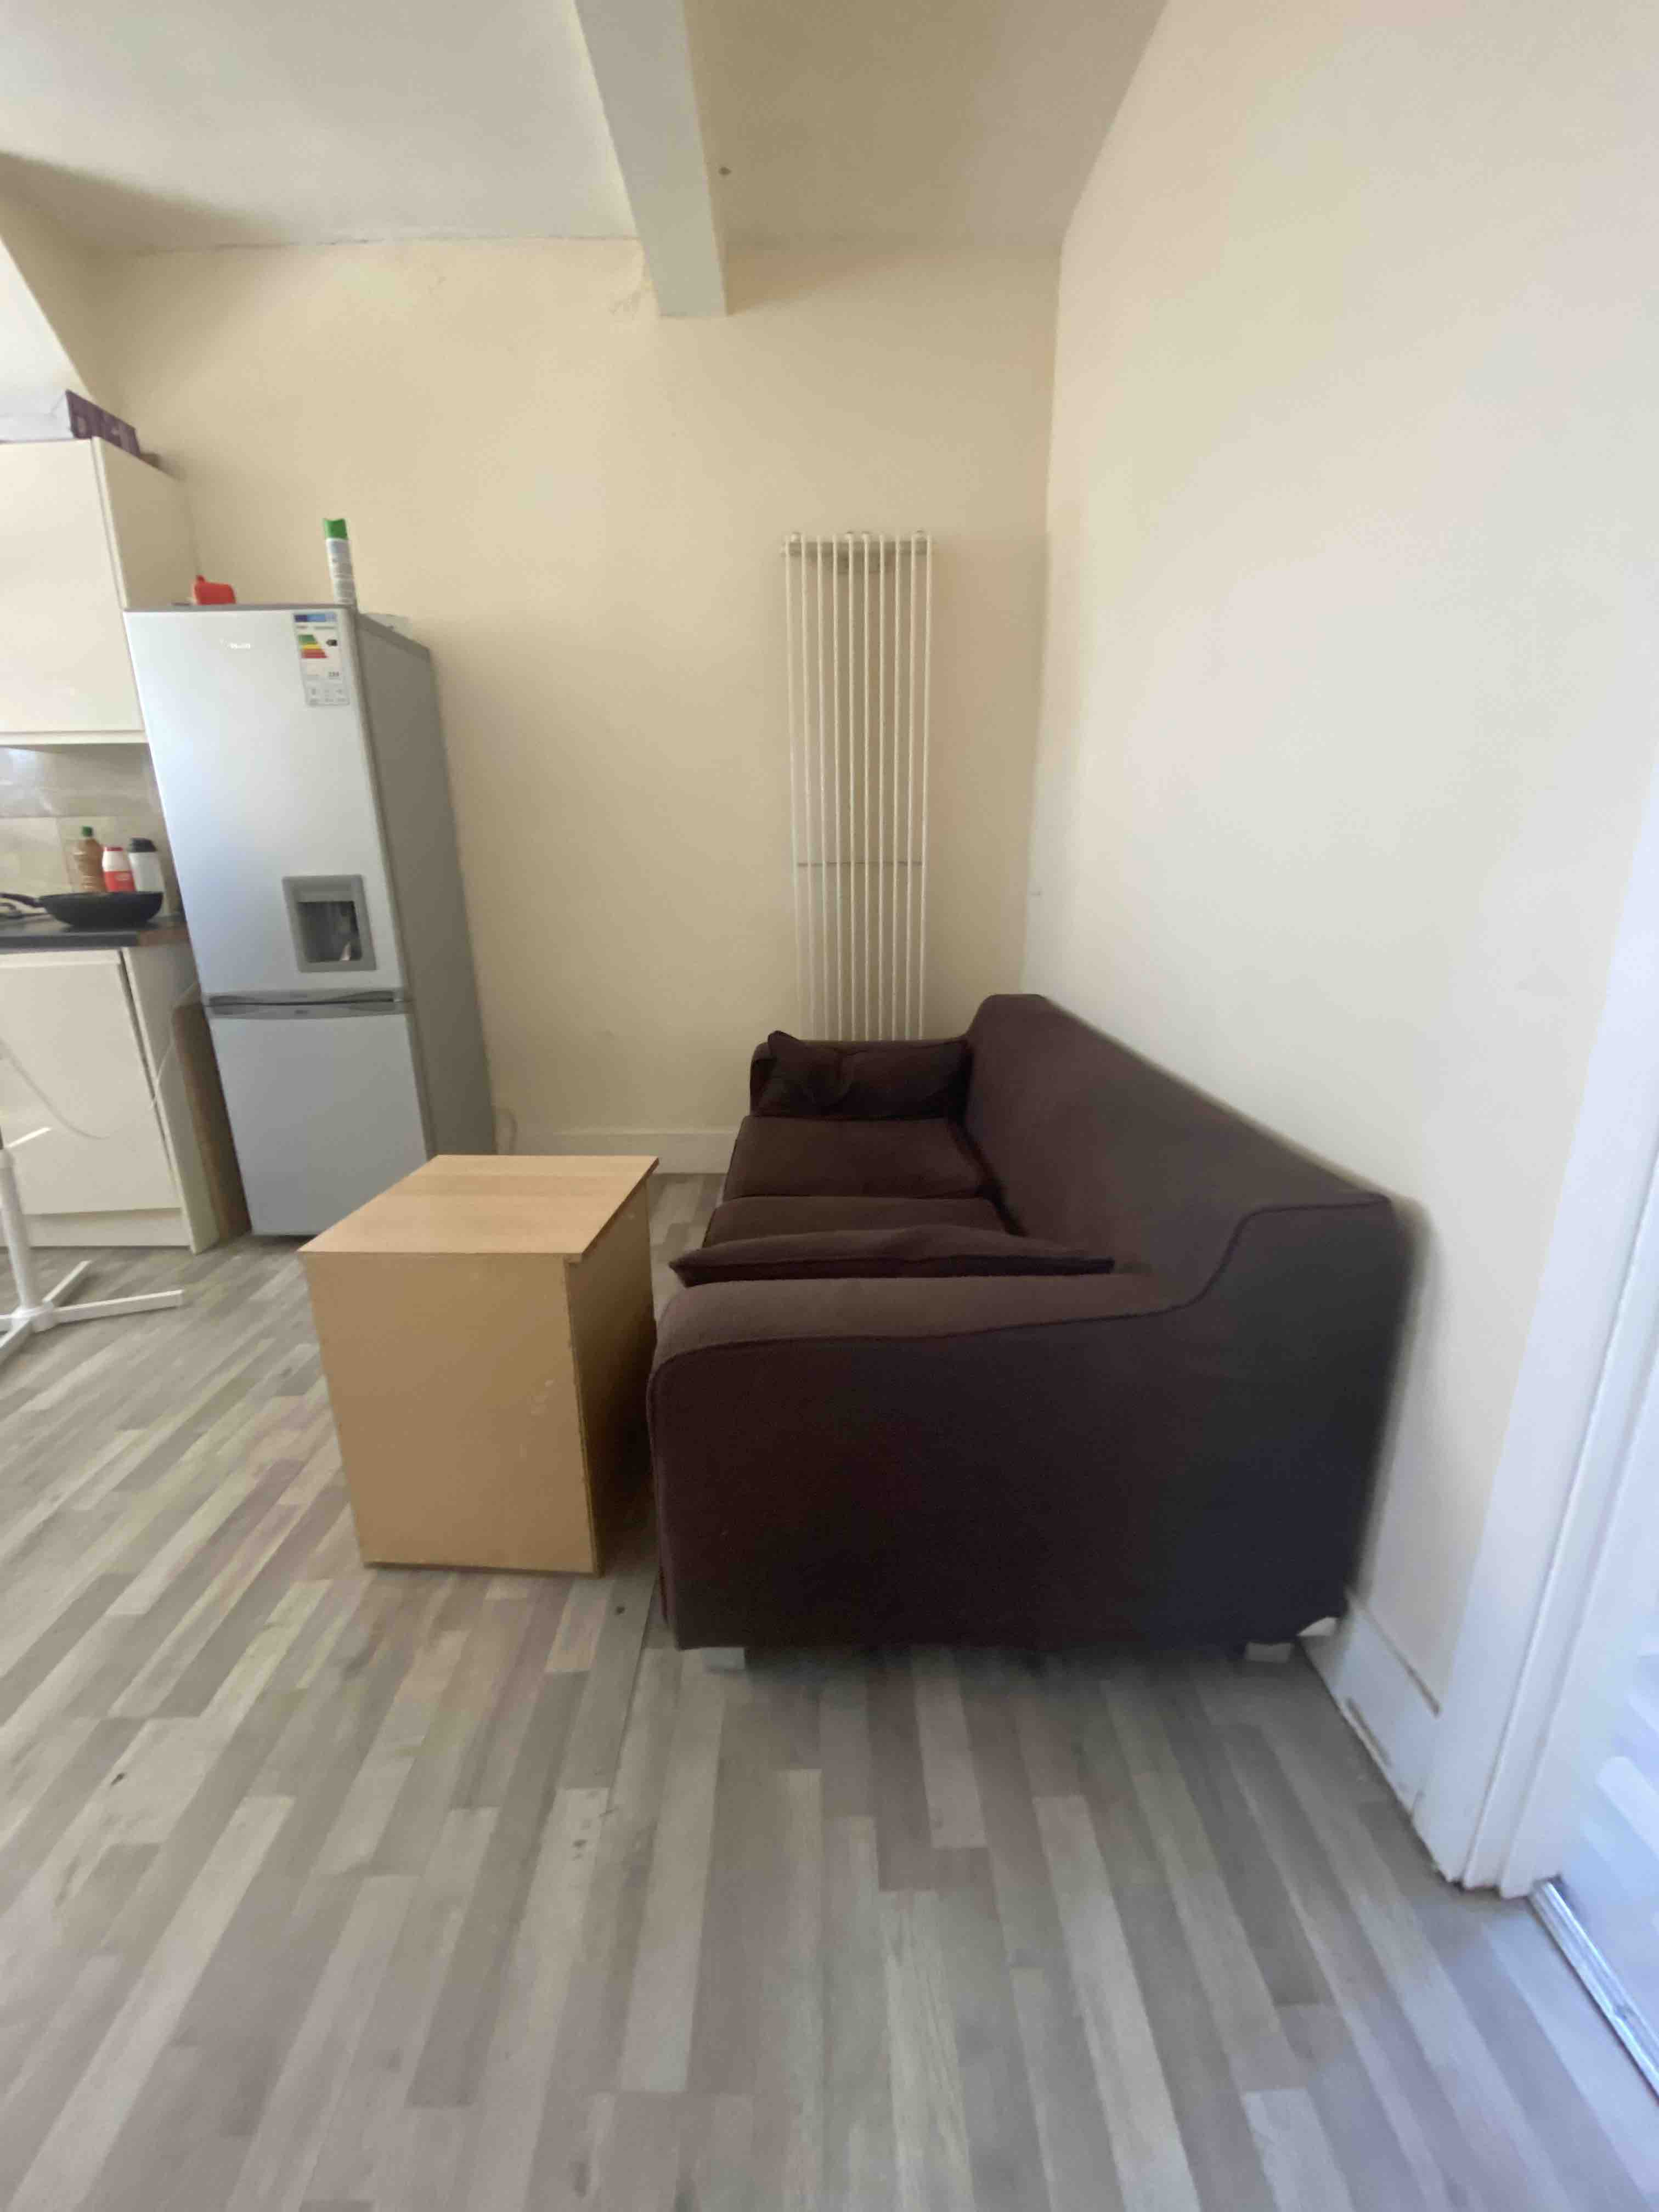 2 rooms in Lady Margaret, London, UB1 2HB RoomsLocal image